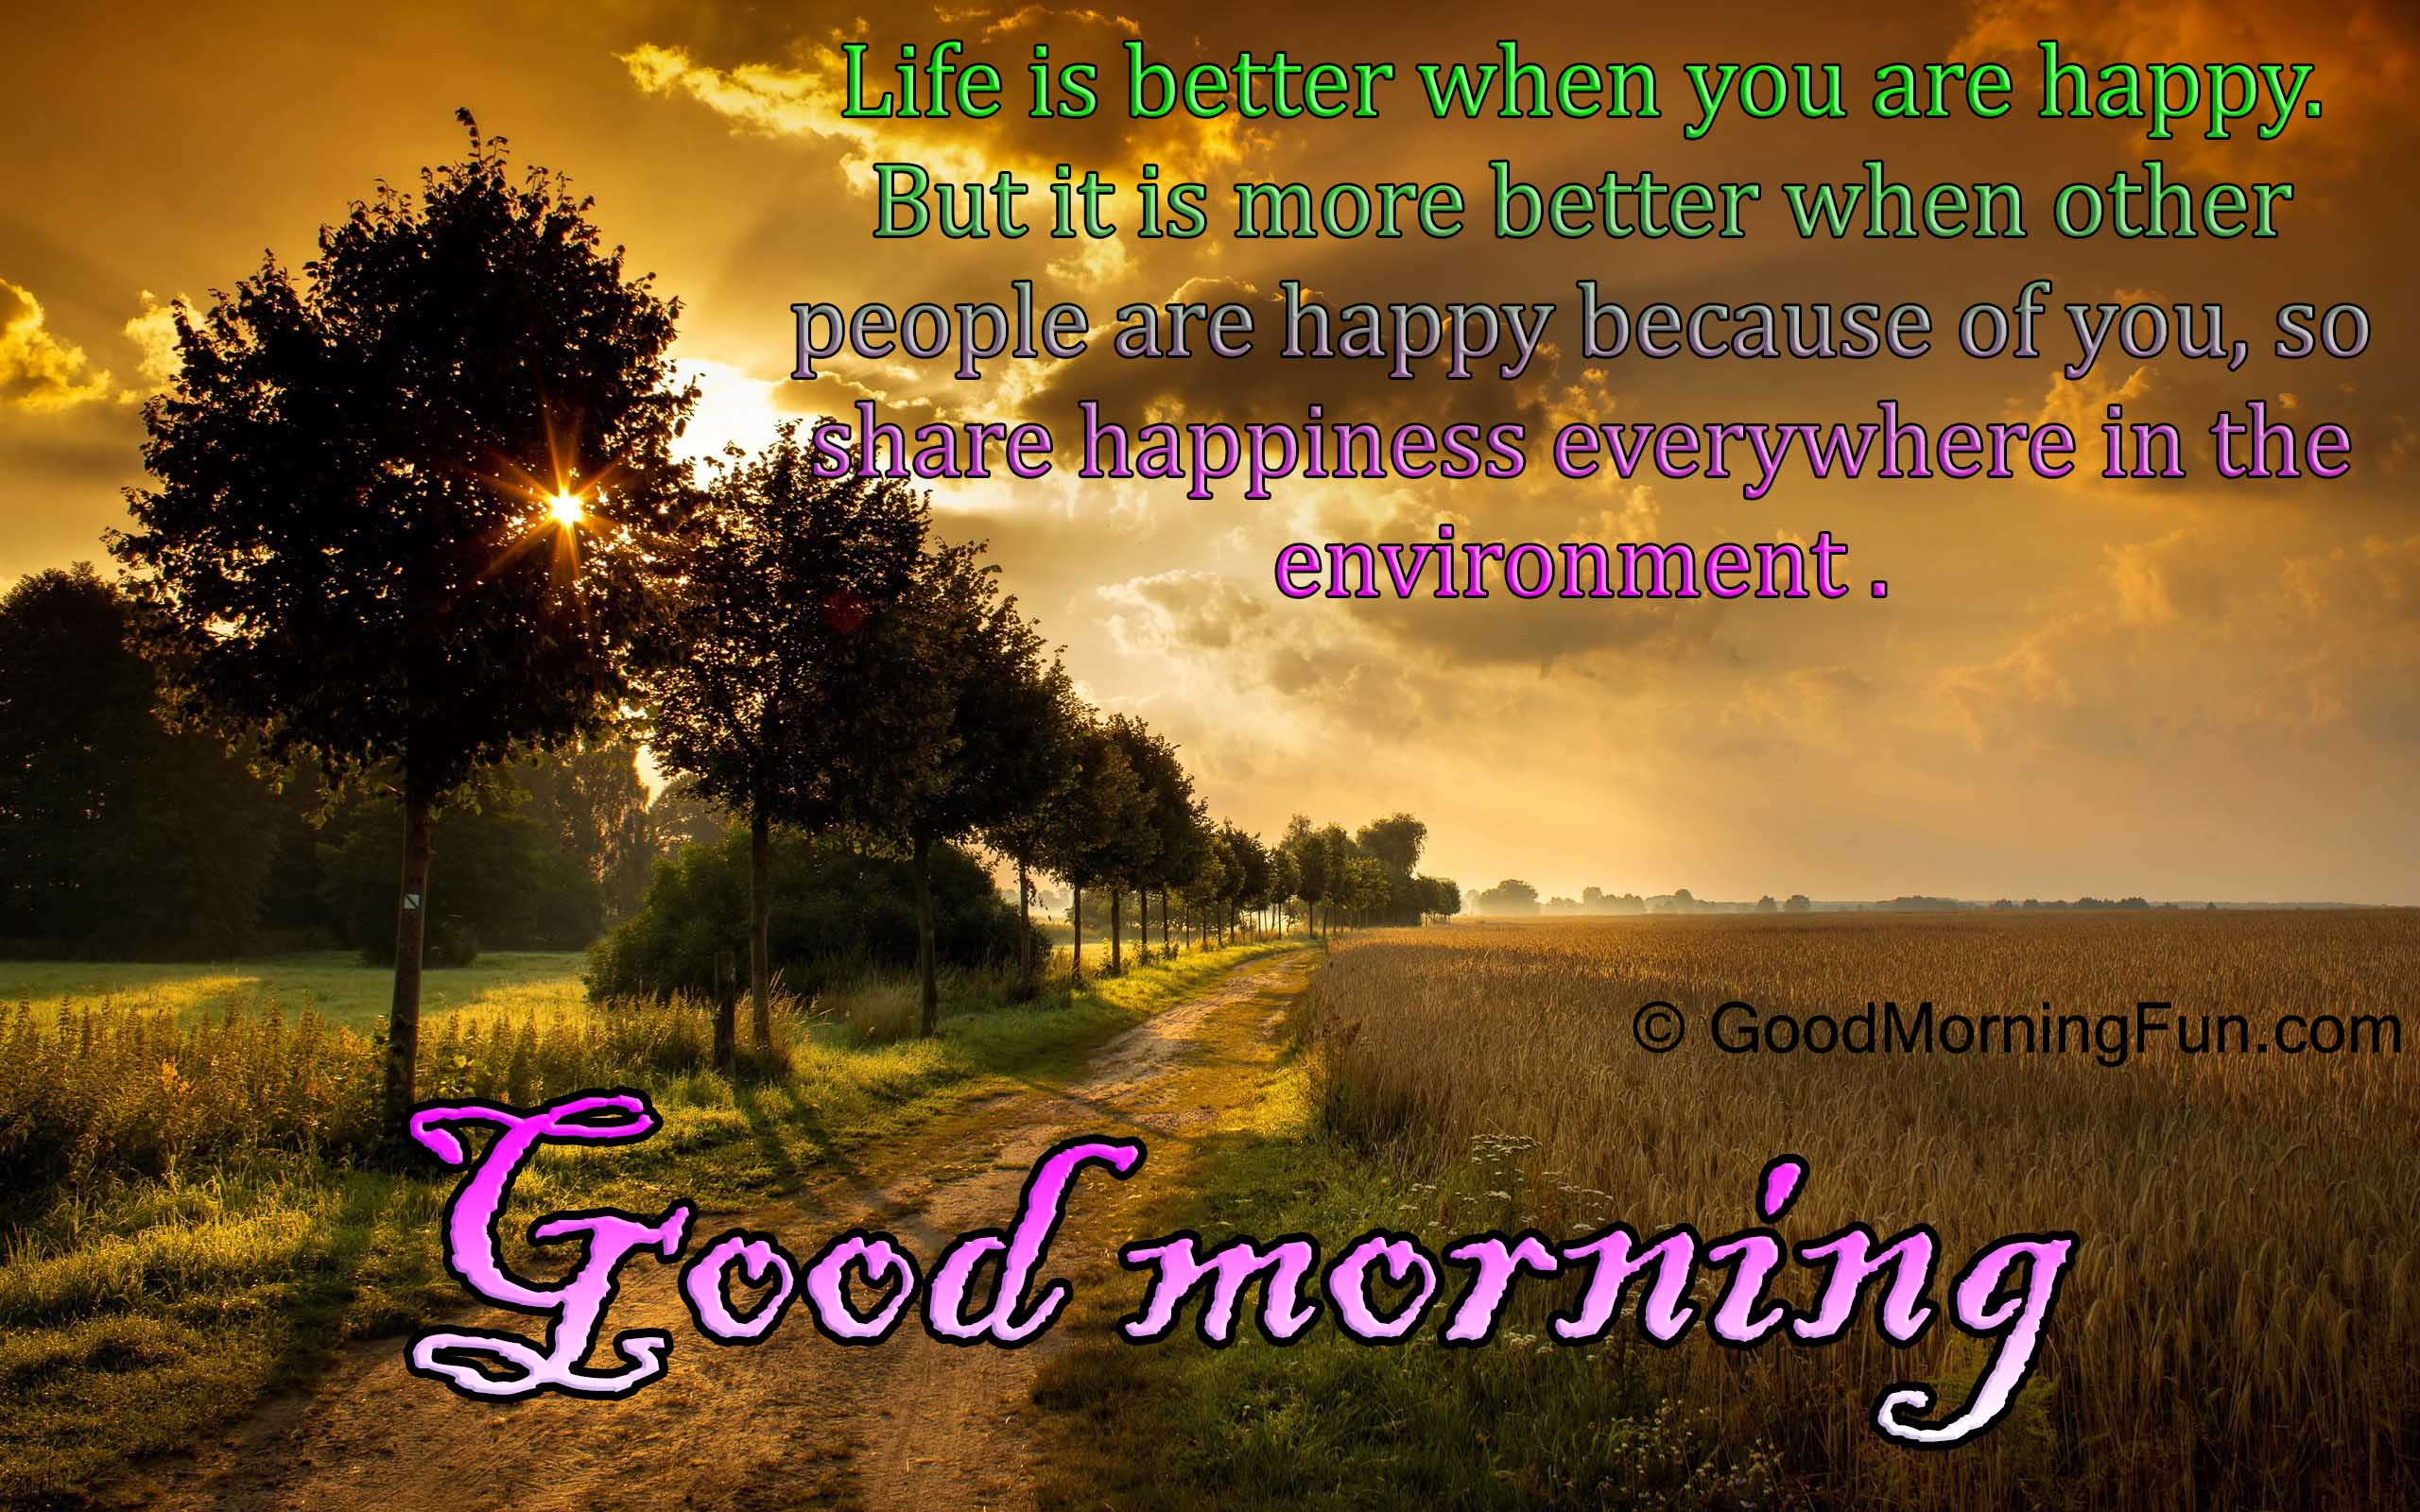 Morning Life Quotes Beauteous Good Morning Quotes On Life Happy Happyness Environment  Good